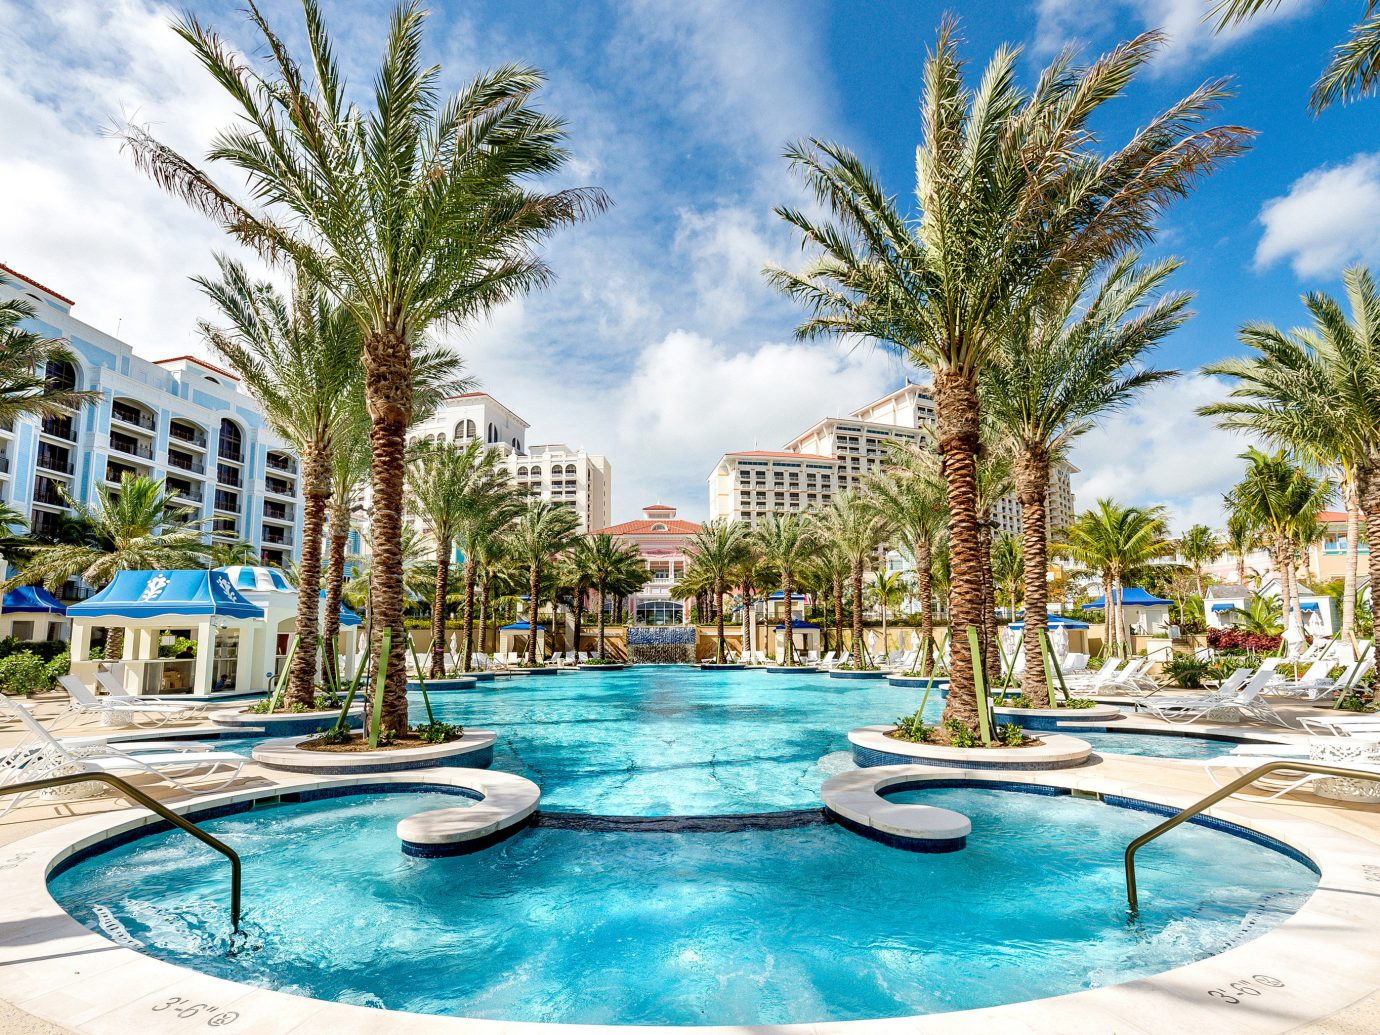 Pool at the Grand Hyatt Baha Mar